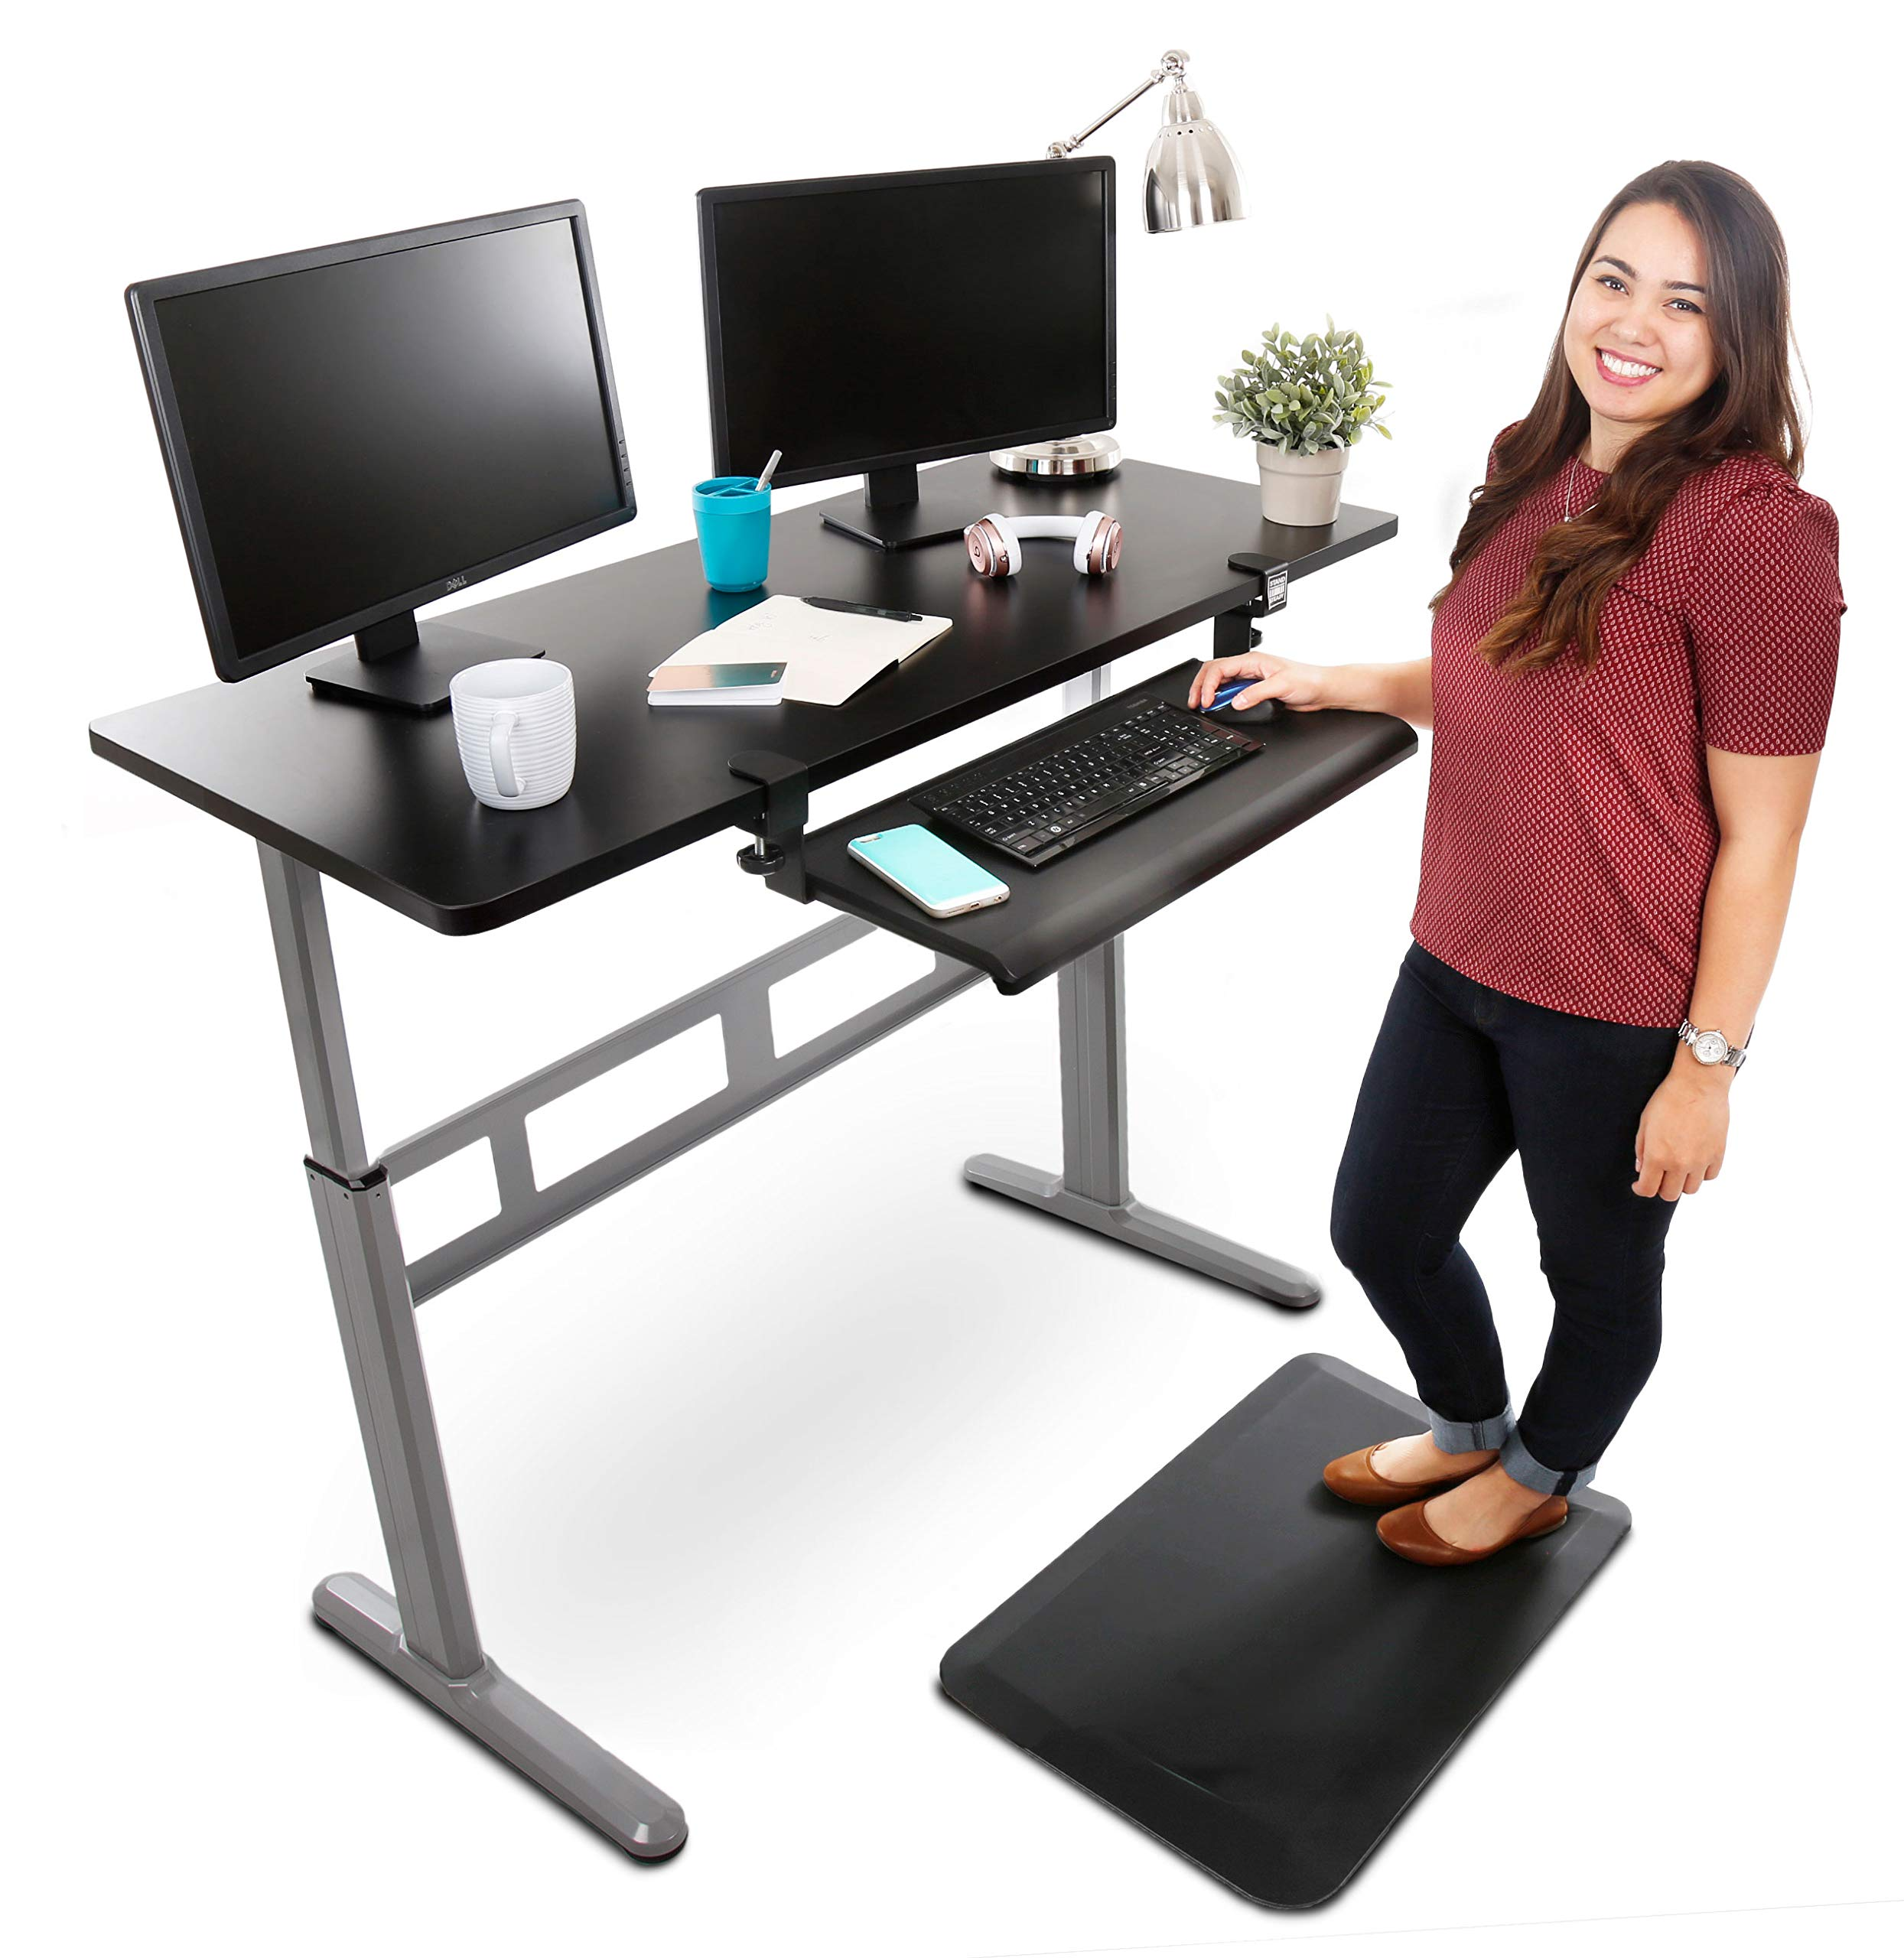 Stand Steady Tranzendesk 55 Inch Standing Desk with Large Clamp On Keyboard Tray - Easy Crank Stand Desk and Attachable Under Desk Tray by Stand Steady